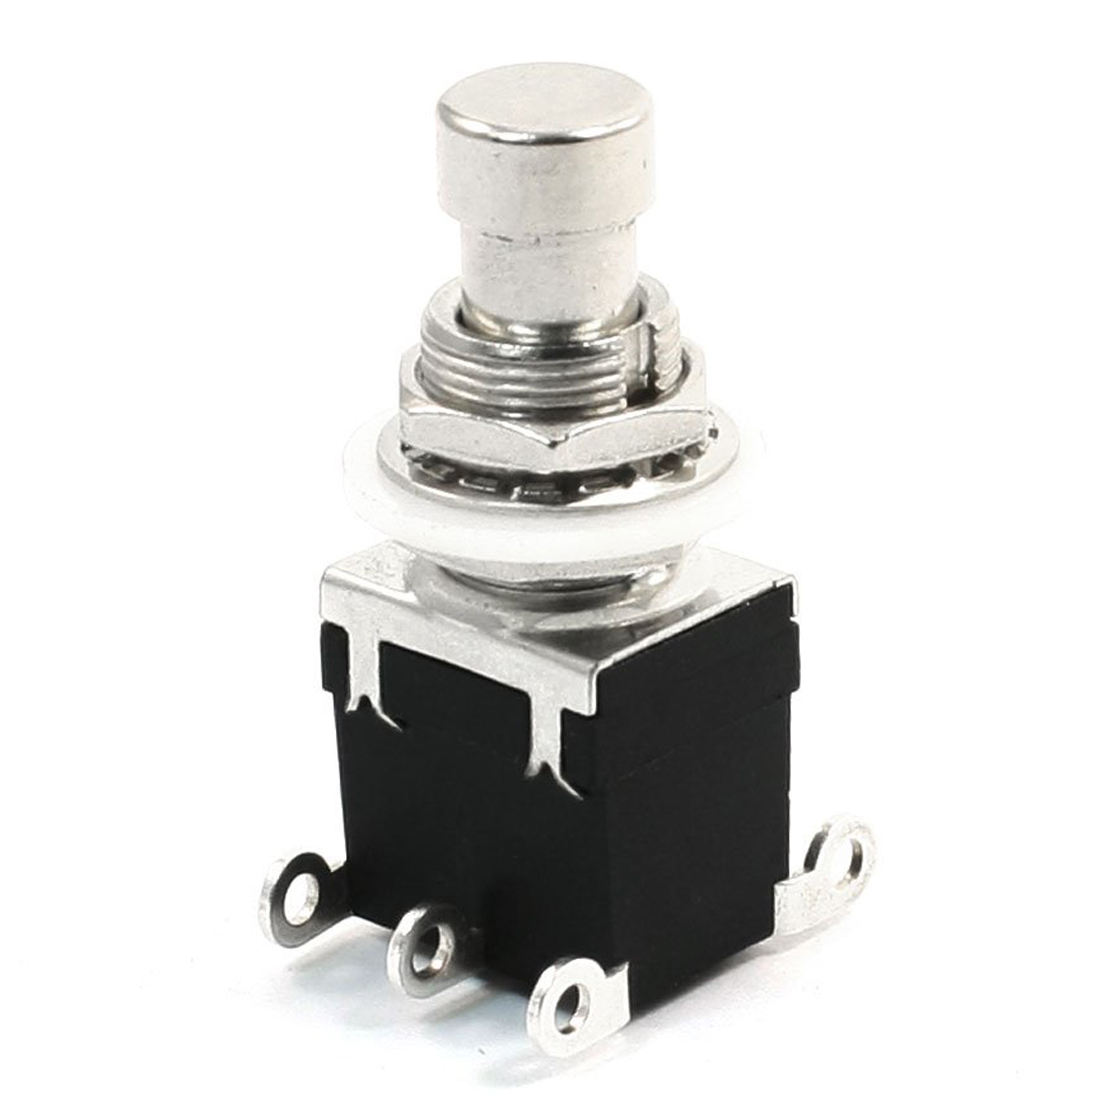 THGS-6Pins DPDT Momentary Stomp Foot Switch for Guitar AC 250V/2A 125V/4A 2 pin spst momentary guitar effects push button foot switch ac 250v 2a